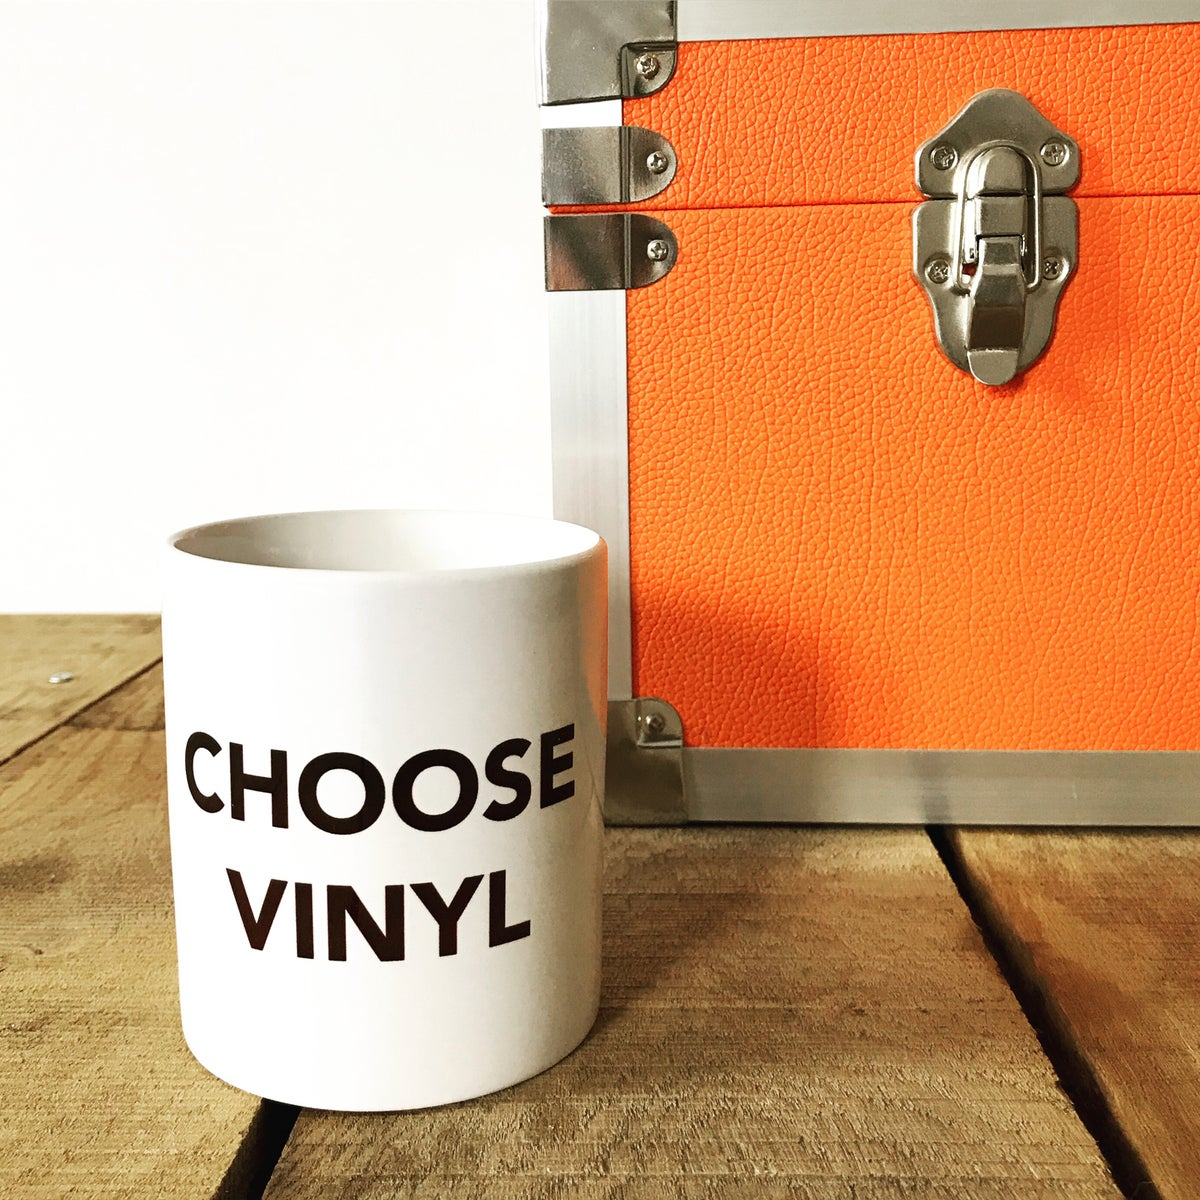 Image of CHOOSE VINYL mug